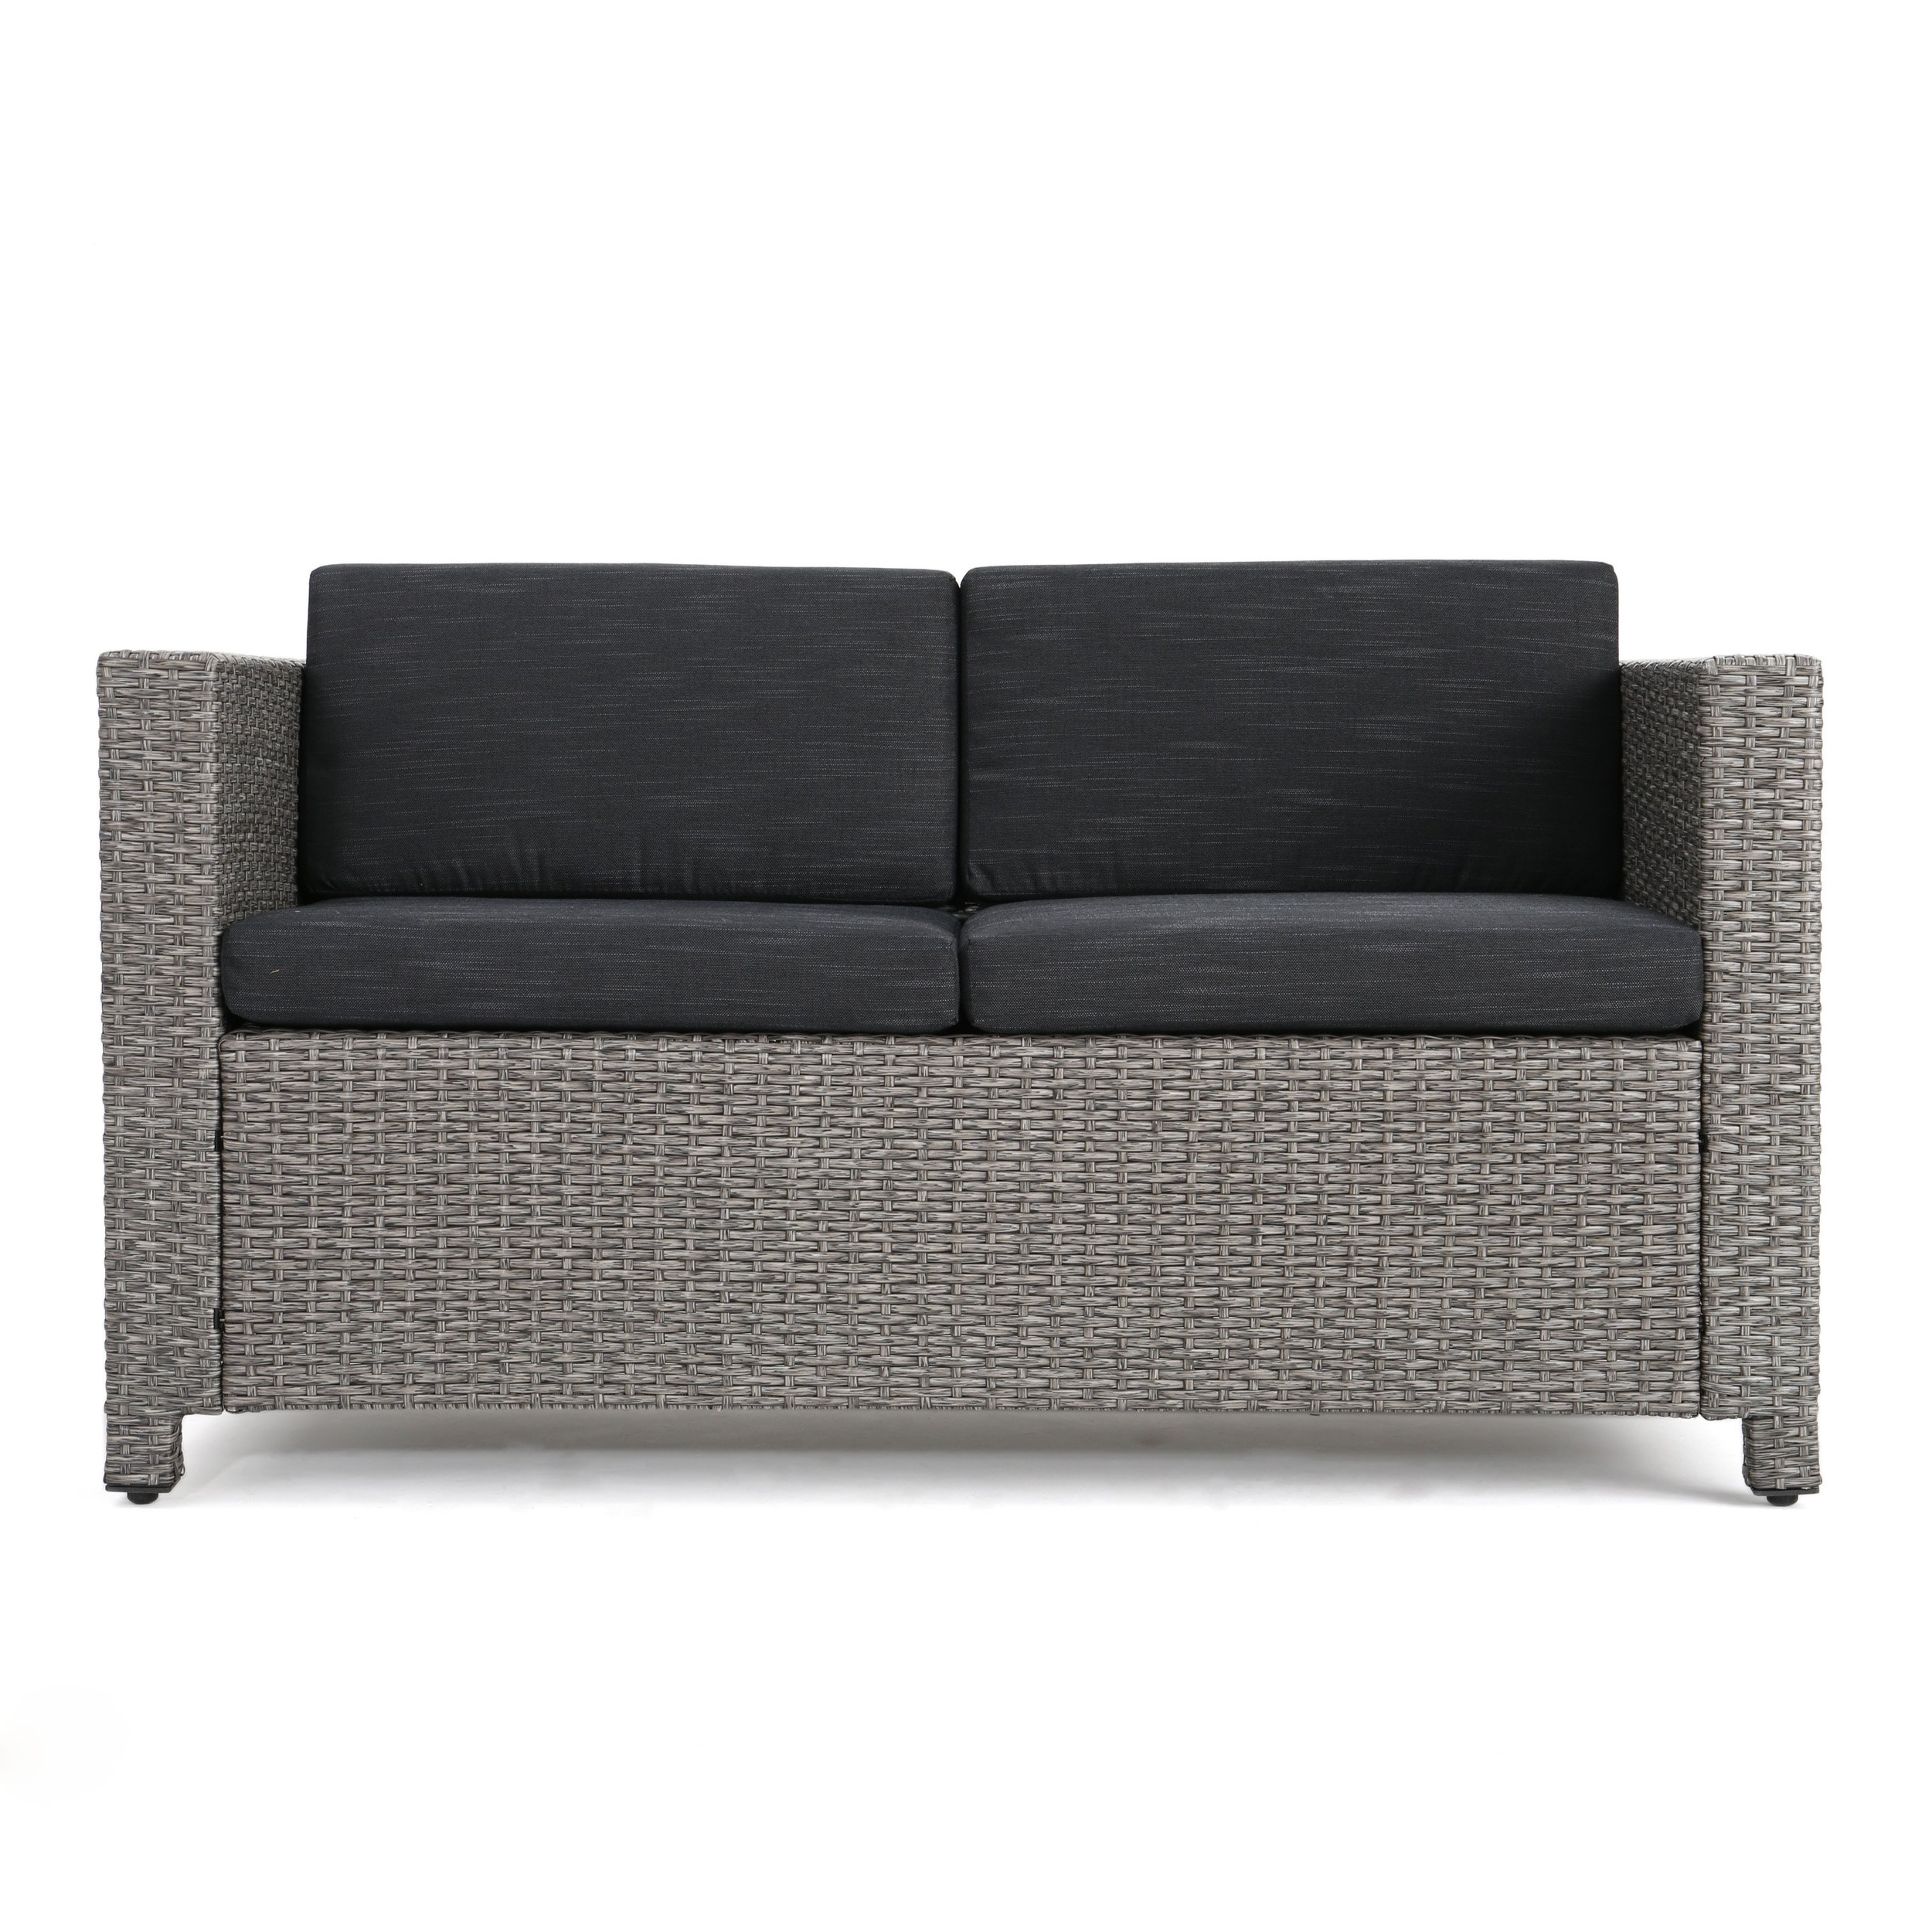 Newest Lorelei Outdoor Wicker Loveseat With Water Resistant Pertaining To Clifford Patio Sofas With Cushions (View 15 of 20)